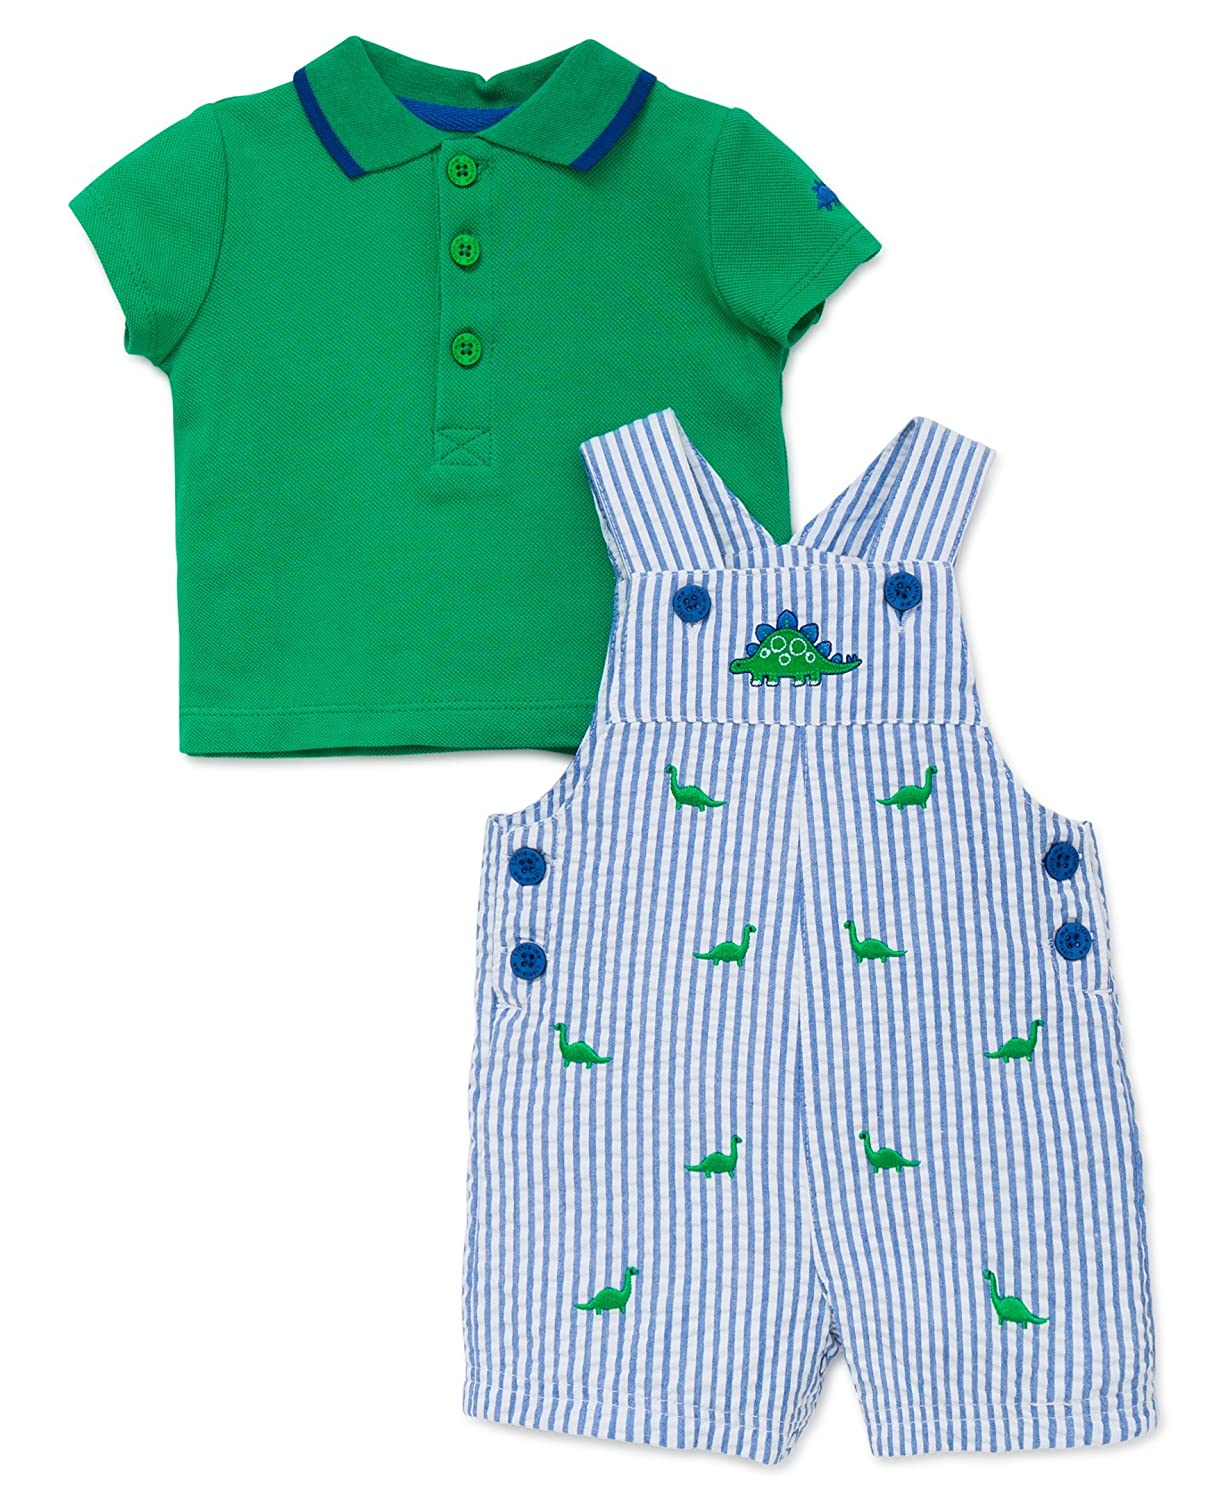 d31a9a1f2 Amazon.com: Little Me Baby Boys' 2 Piece Knit Top with Woven Shortall:  Clothing